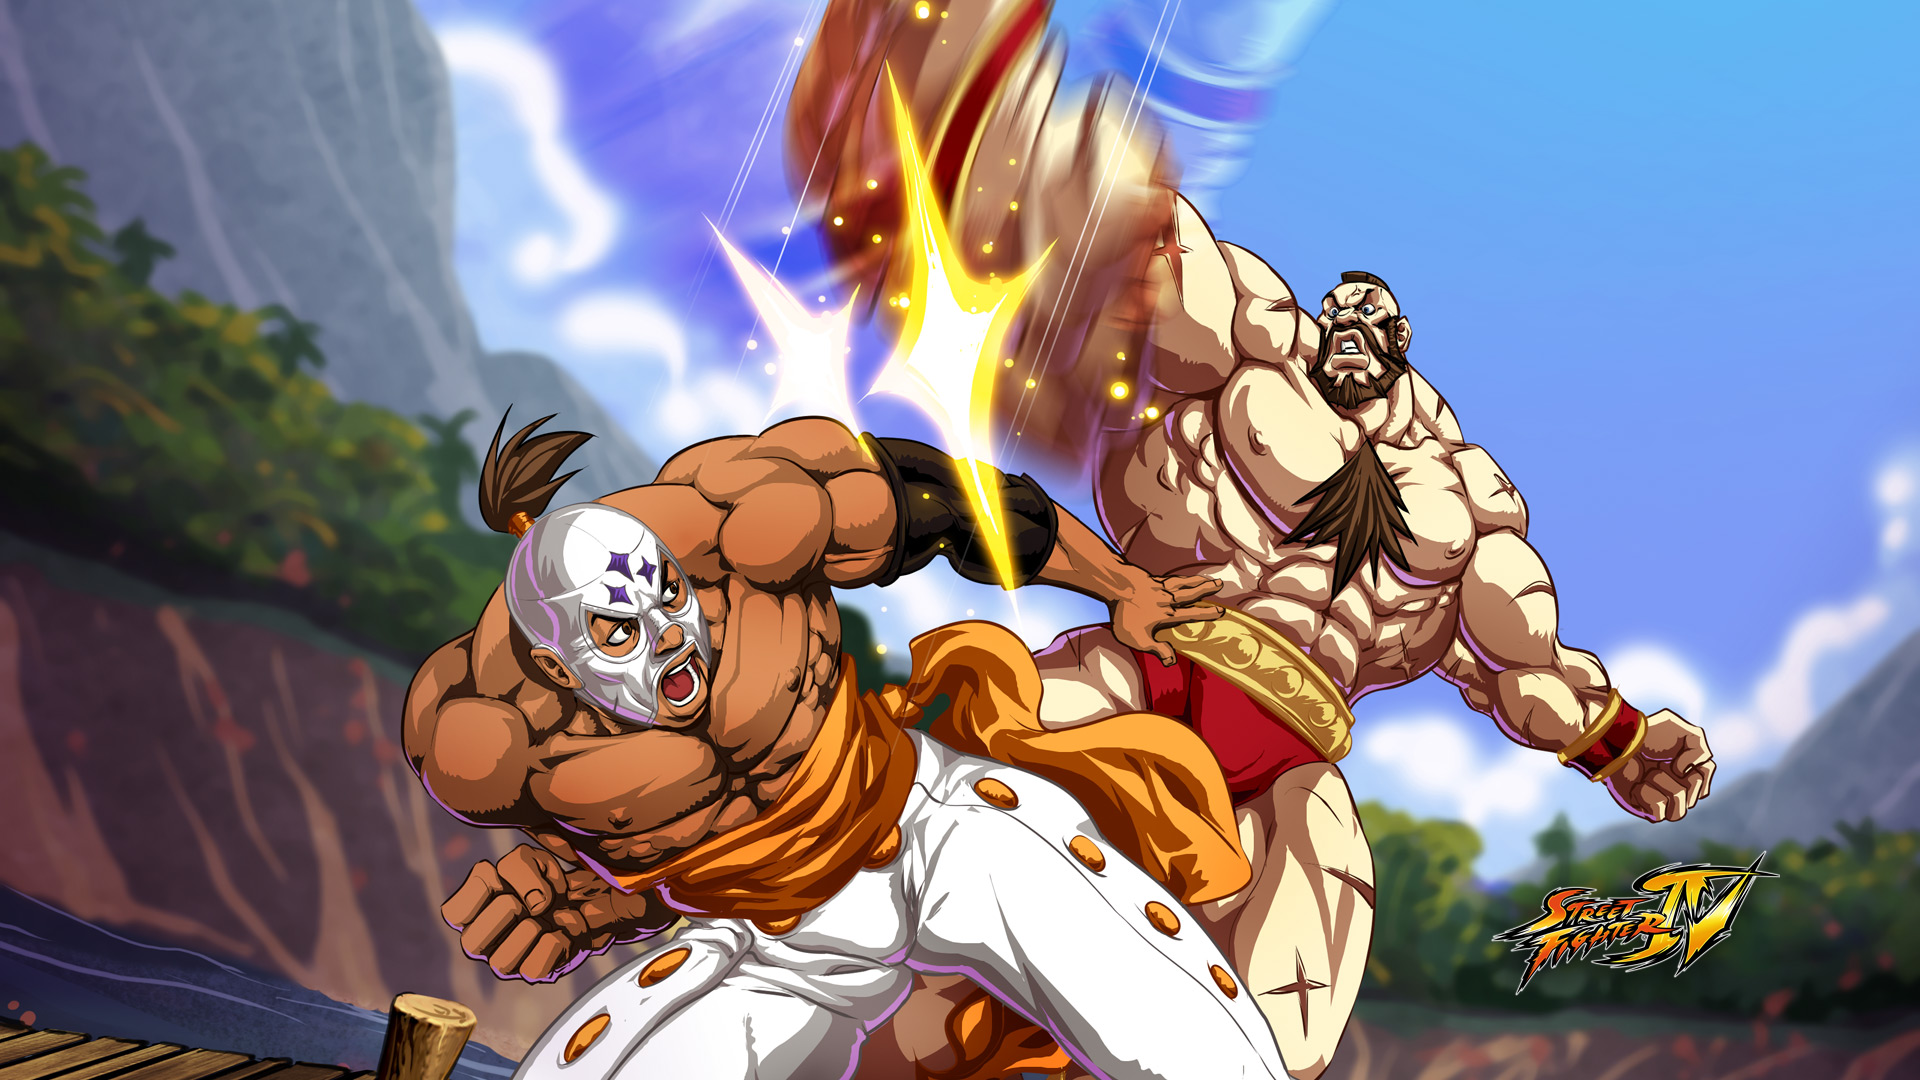 Street Fighter Wallpaper on Street Fighter Hd Wallpaper   General   193339